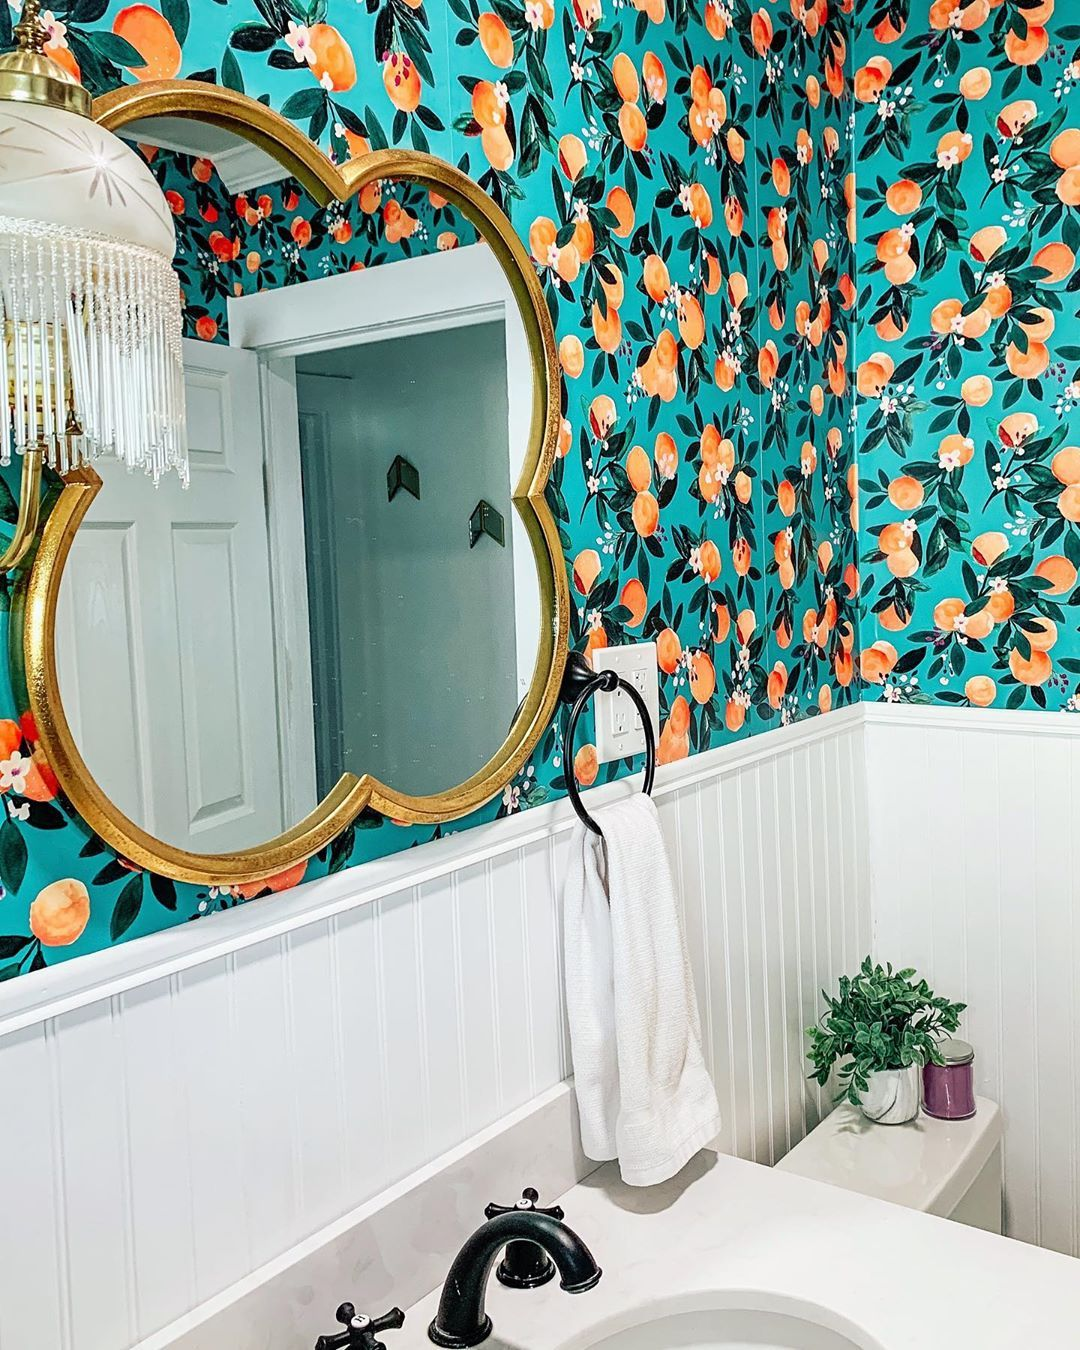 Karlin Summer On Instagram How Much Wallpaper Is Too Much This Bold Wallpaper Is In My Bathroom But I M Thinking About Using A Different Design O